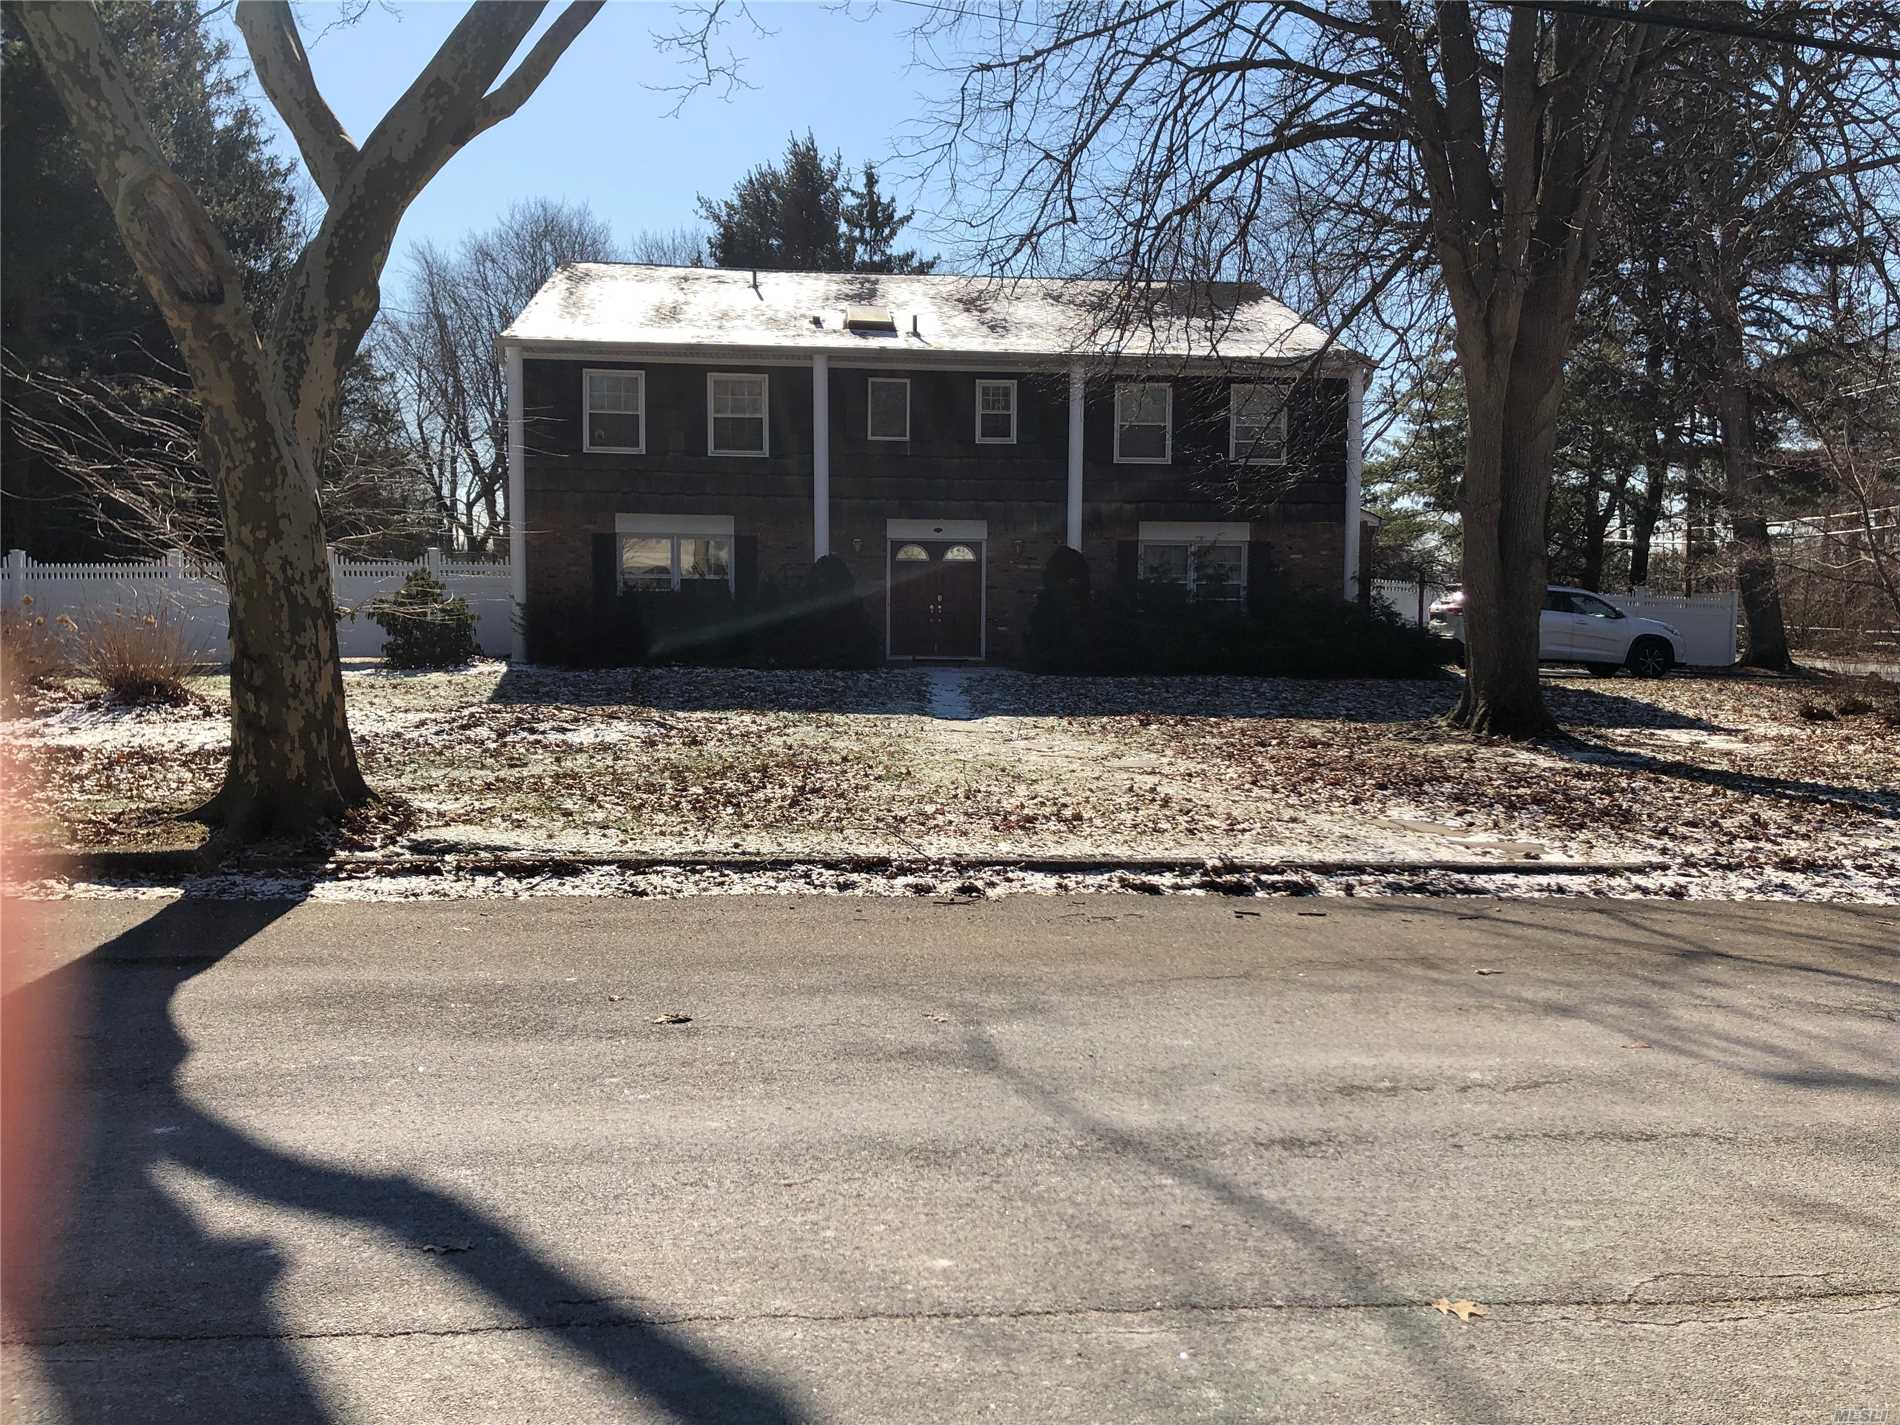 Mint Colonial . Wont Last Major Opportunity In Desirable School District. This Is The Deal You Were Waiting For !!